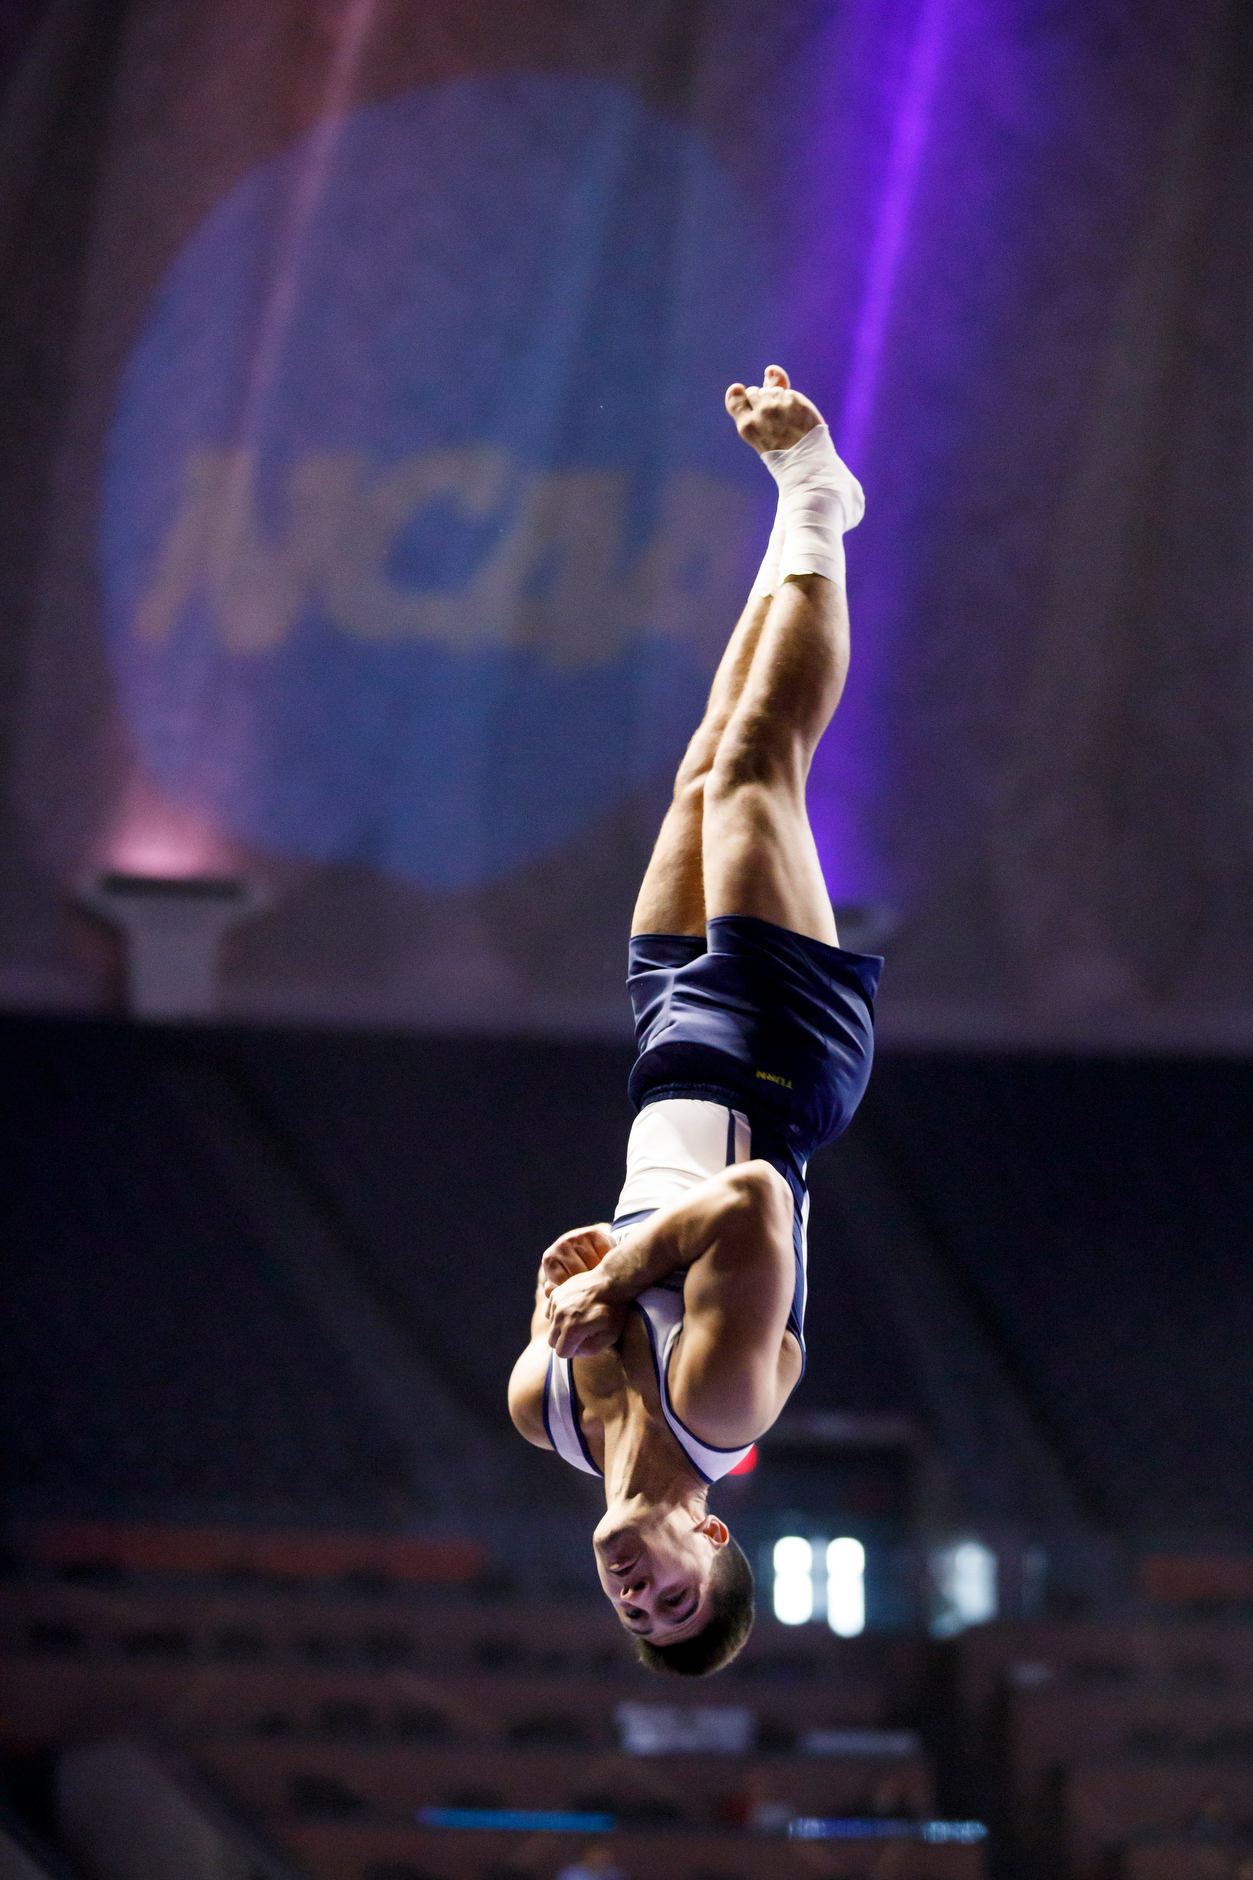 Michigan's Nick Guy competes on the vault at the NCAA Men's Gymnastics Championships on Friday, April 19, 2019, at the State Farm Center in Champaign, Illinois. (Photo by James Brosher)